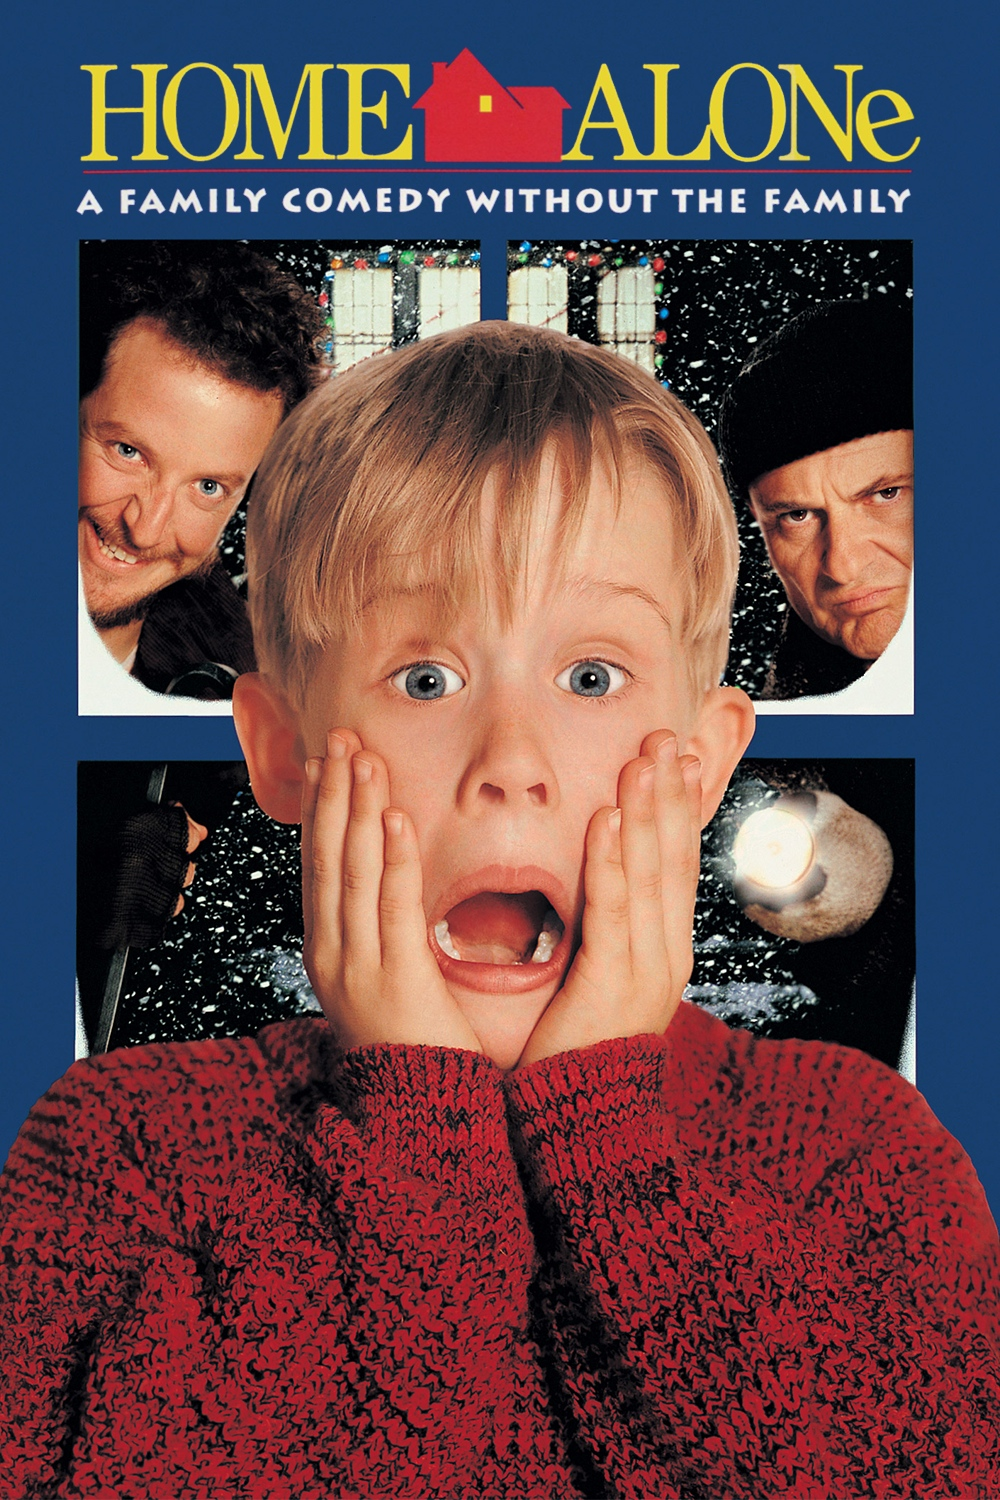 home alone theatrical poster background 11 The 10 Most Timeless Childrens Films